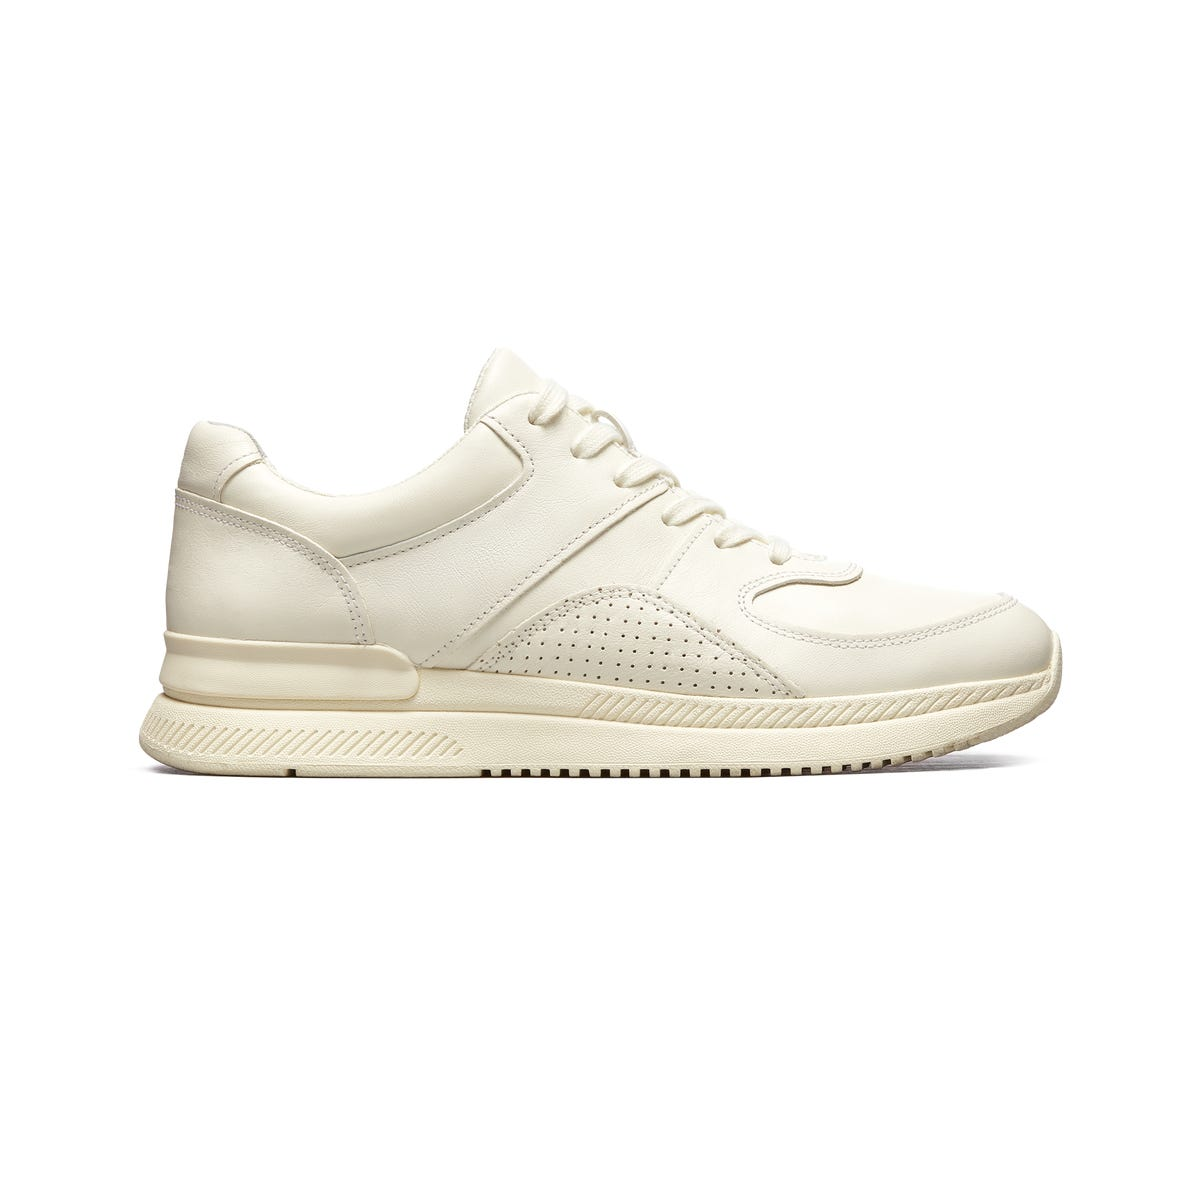 reputable site 294de 899c7 Best White Sneakers For Women - 2019 Cool New Trends